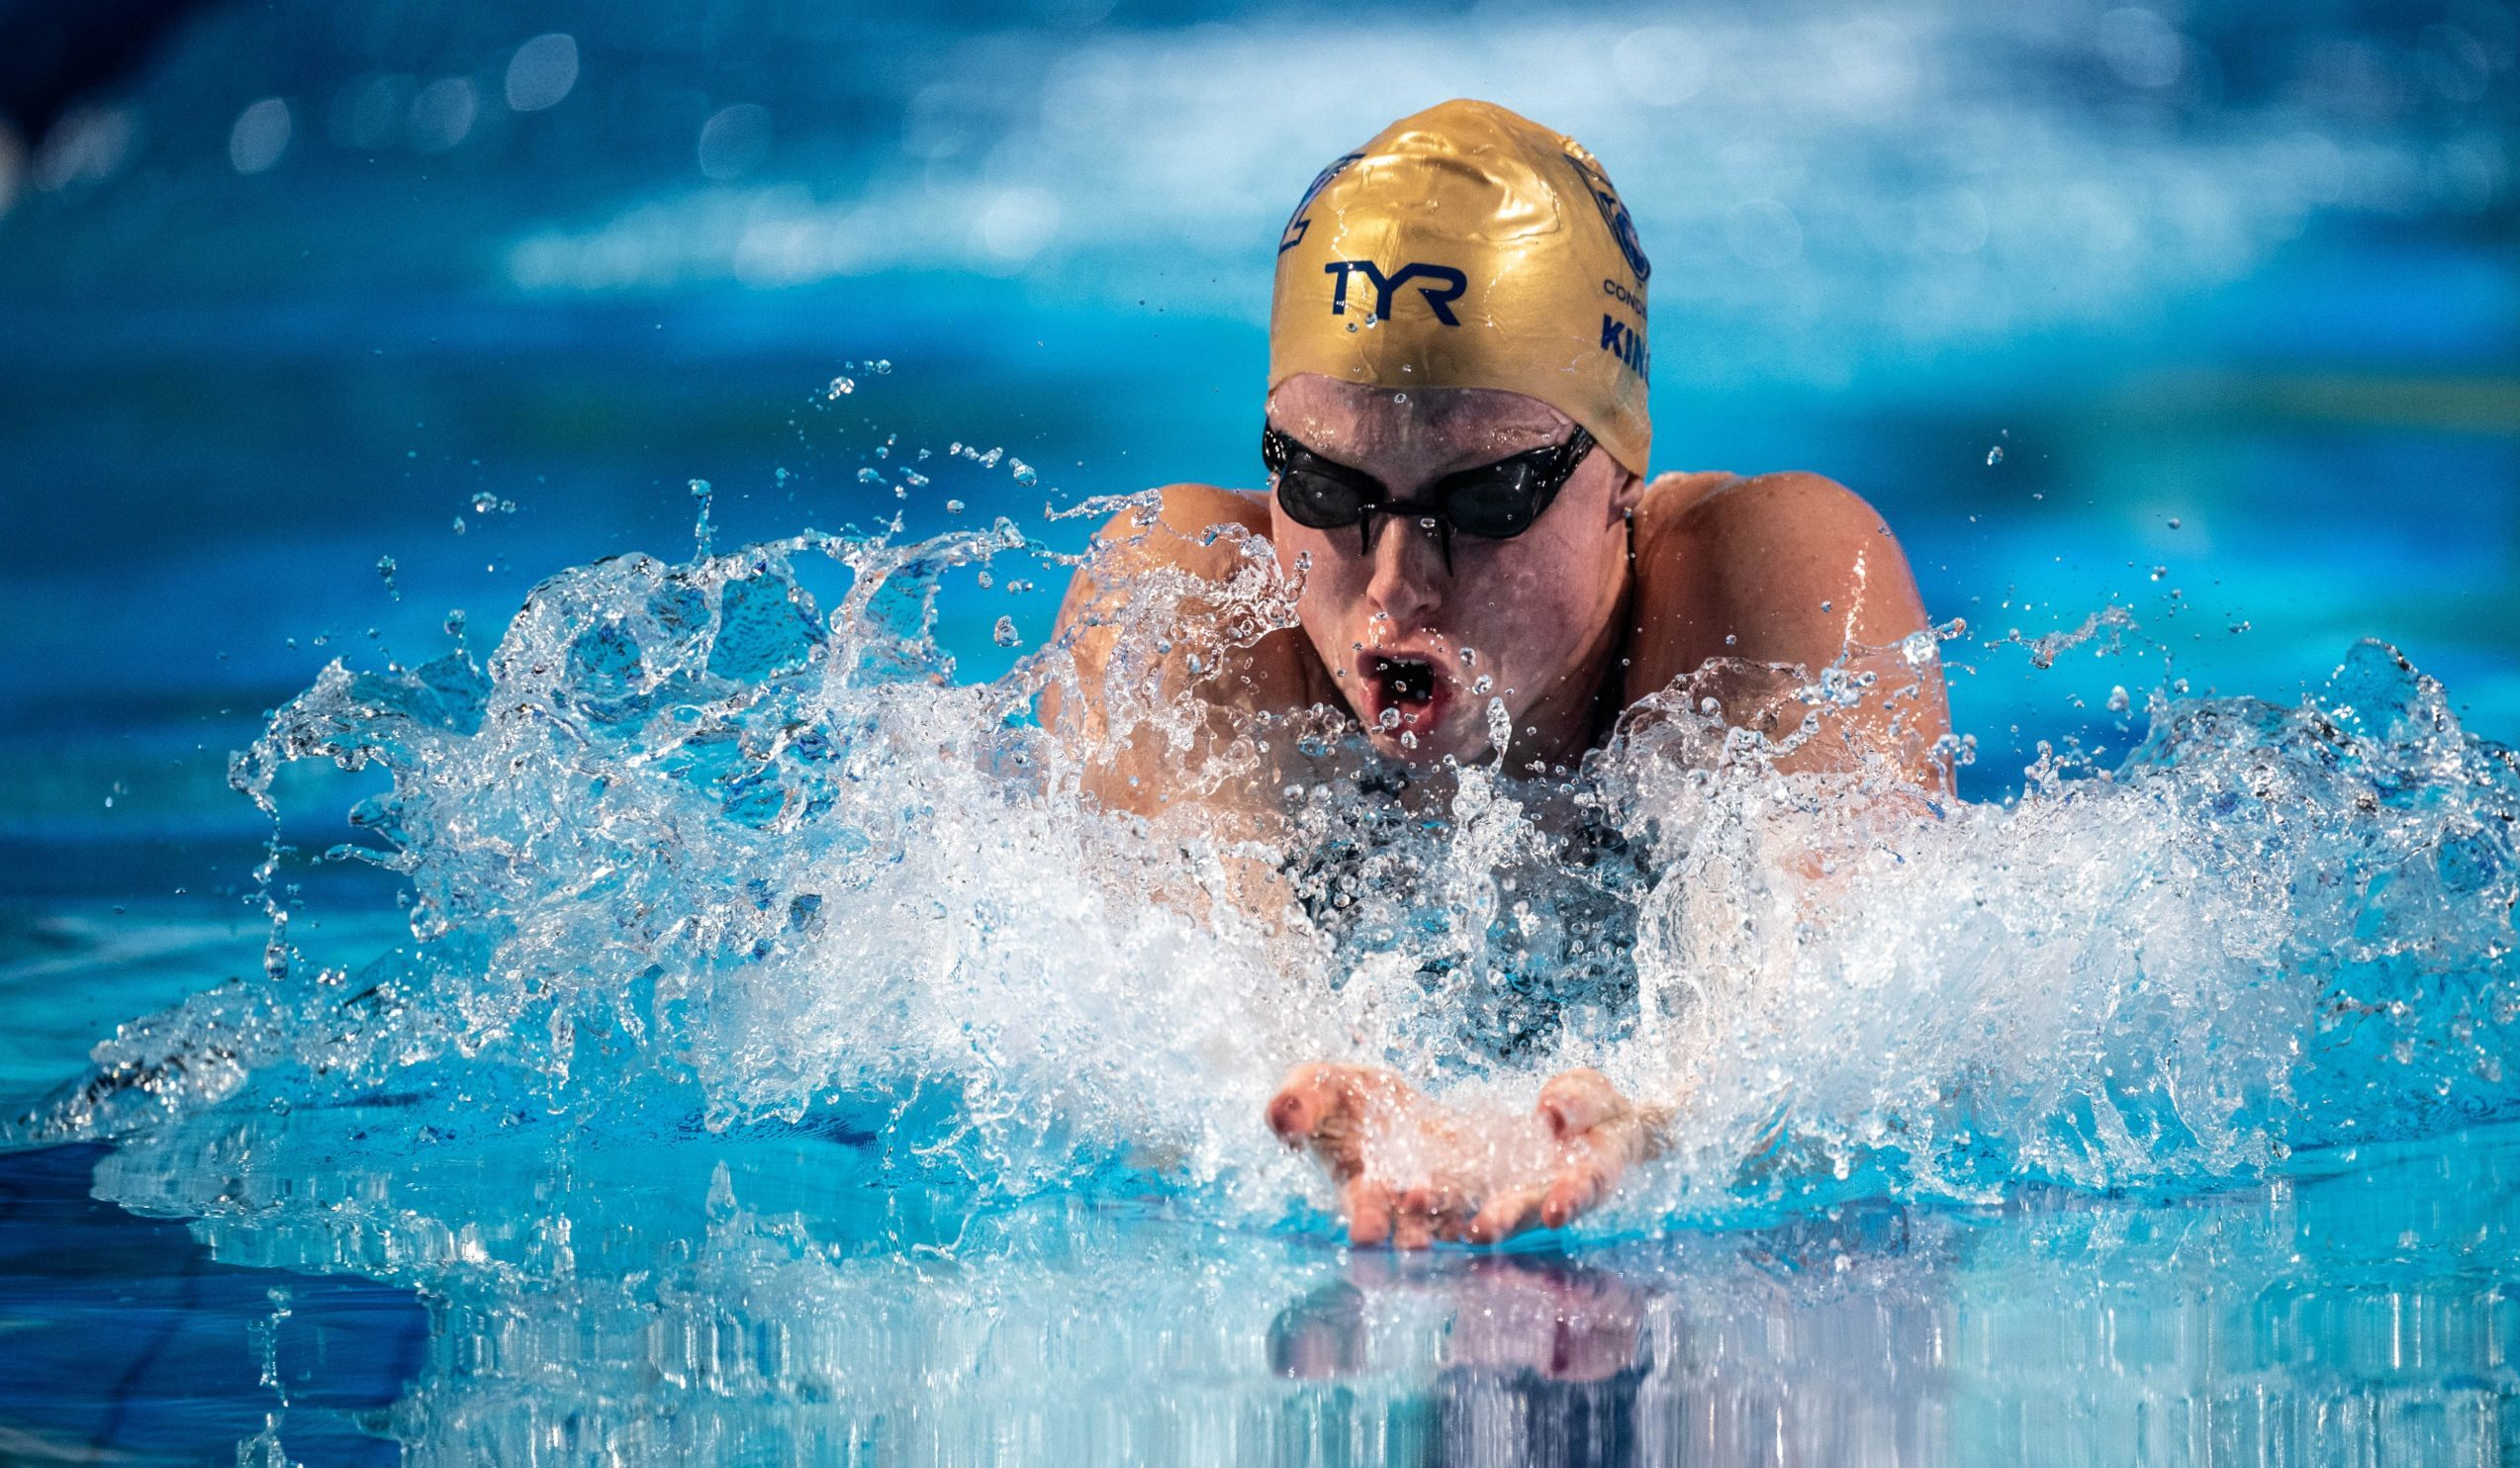 Olympic medalist Lilly King swims at the Tokyo Olympics.